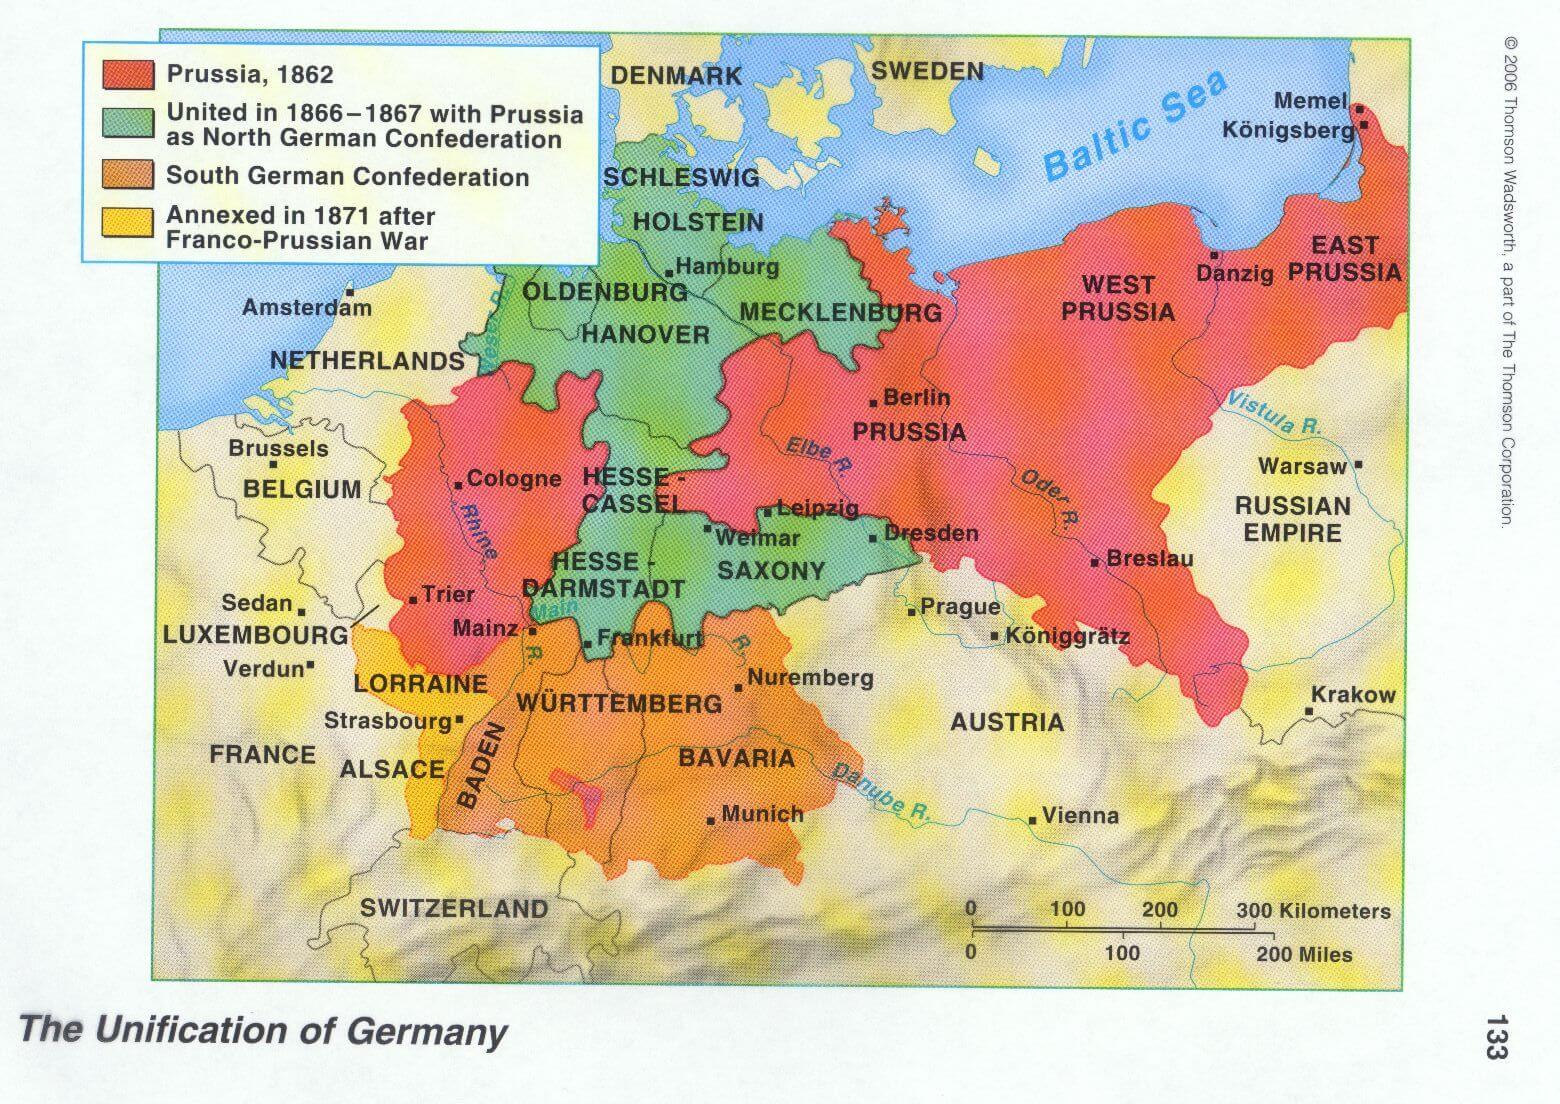 Map Of Germany Krakow.Map Of Twentieth Century Europe Imagined In 1863 Languages Of The